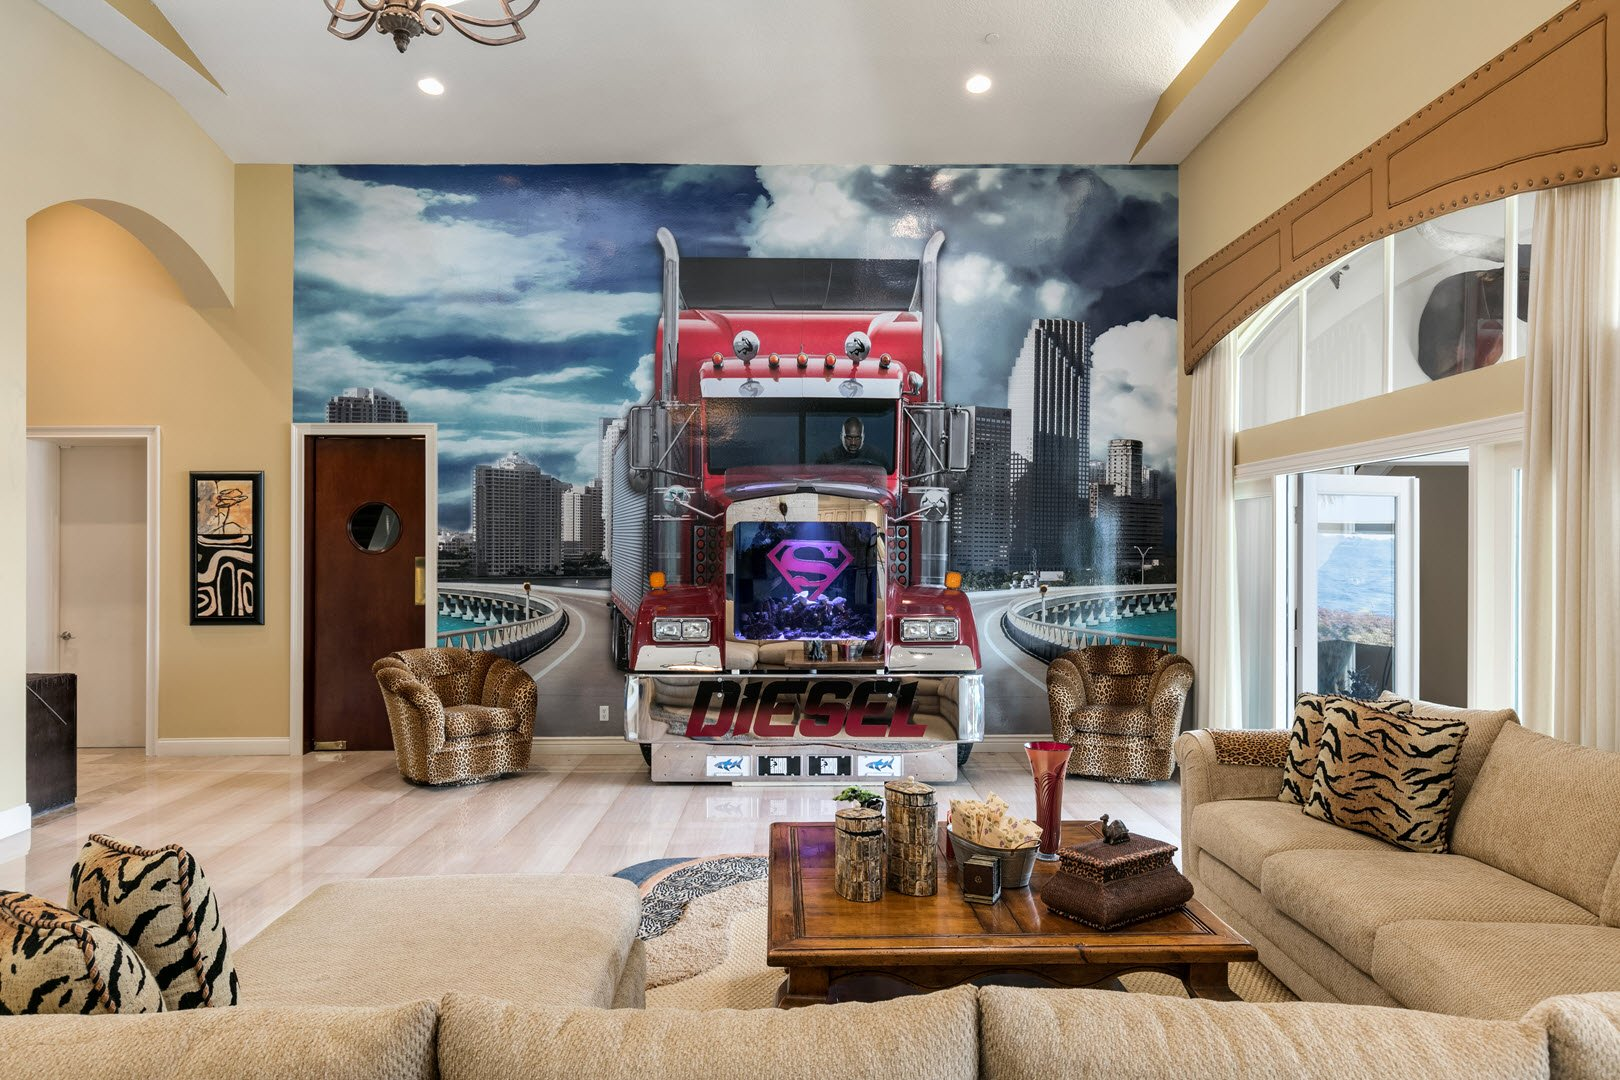 Inside Shaquille ONeal Gradious Mansion in Florida For Sale - Wall mural of a true-to-size tractor trailer barreling toward the interior of the room